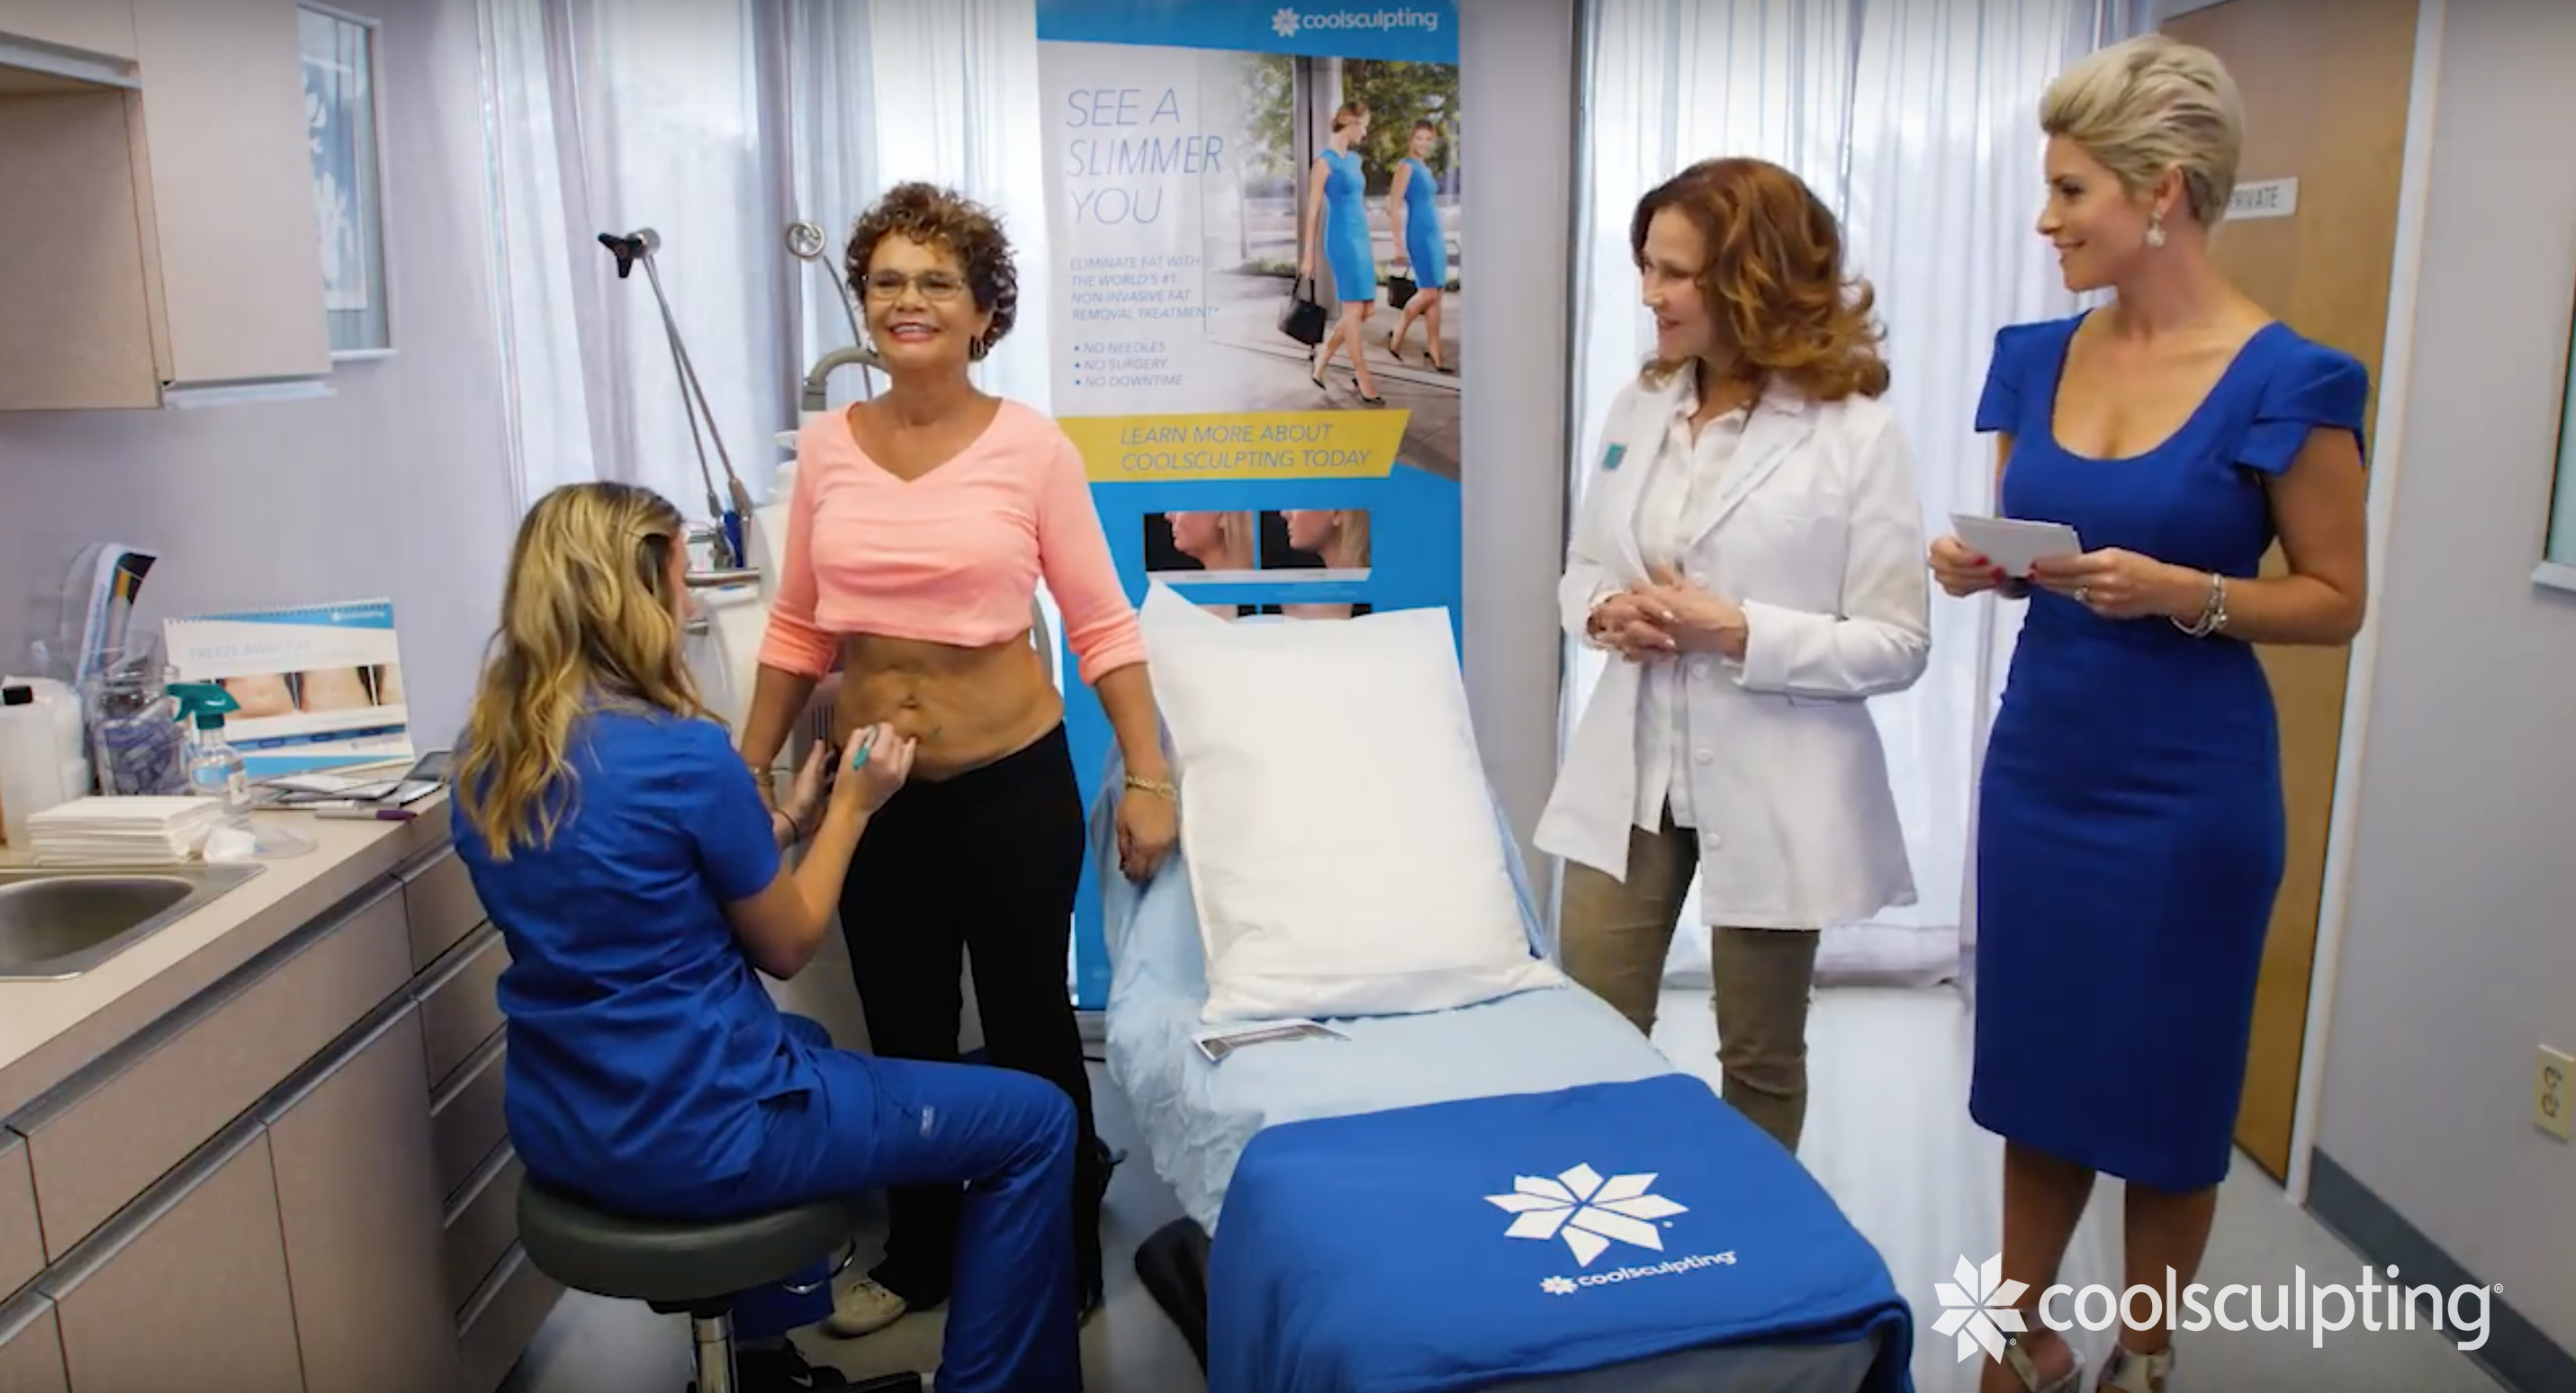 Does CoolSculpting Work? Dr. Mary Lupo Explains.